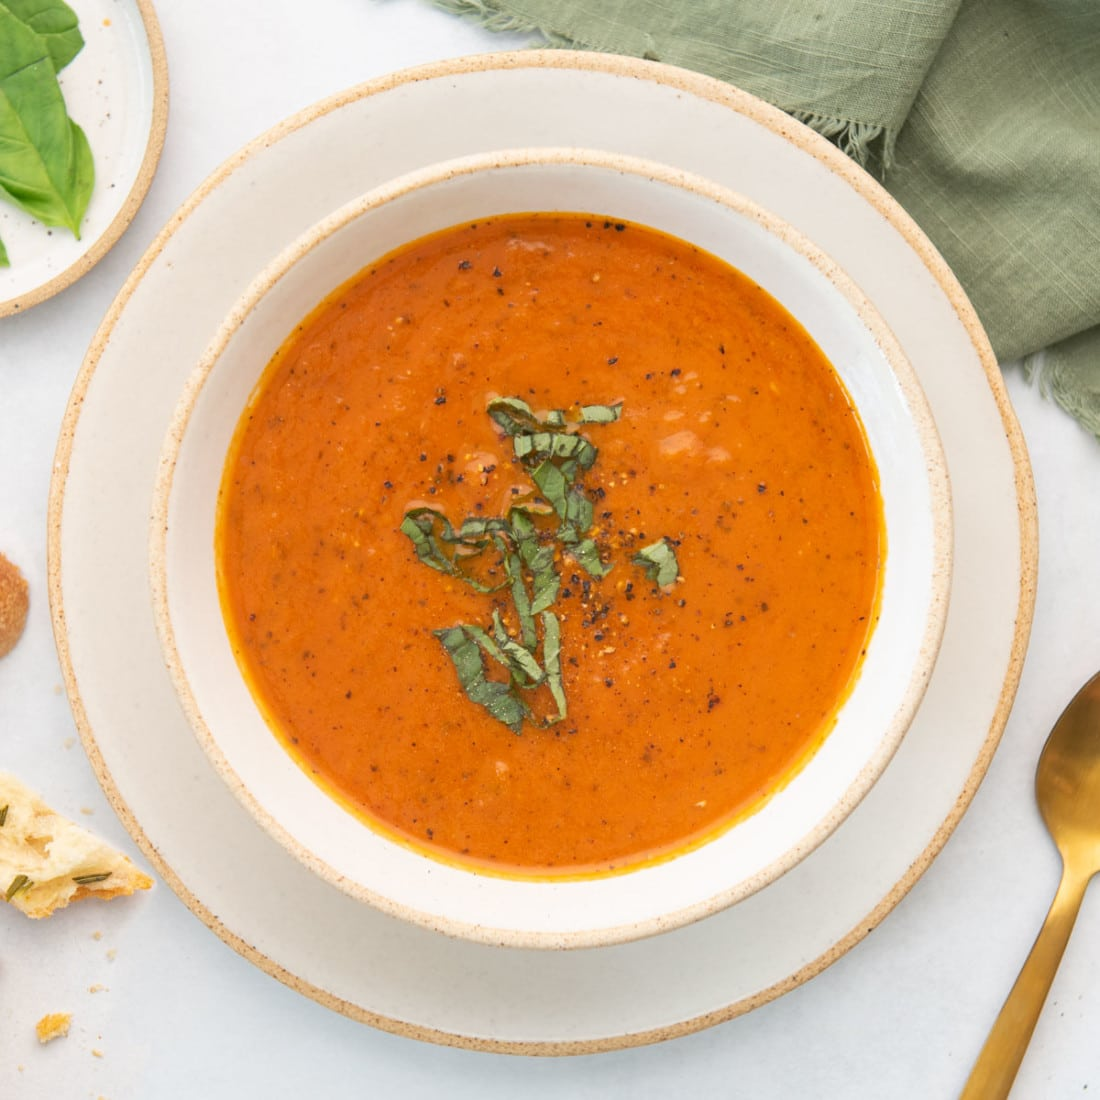 overhead view of plated bowl of creamy tomato soup, topped with slivers of fresh basil and cracked black pepper, with gold spoon on the side